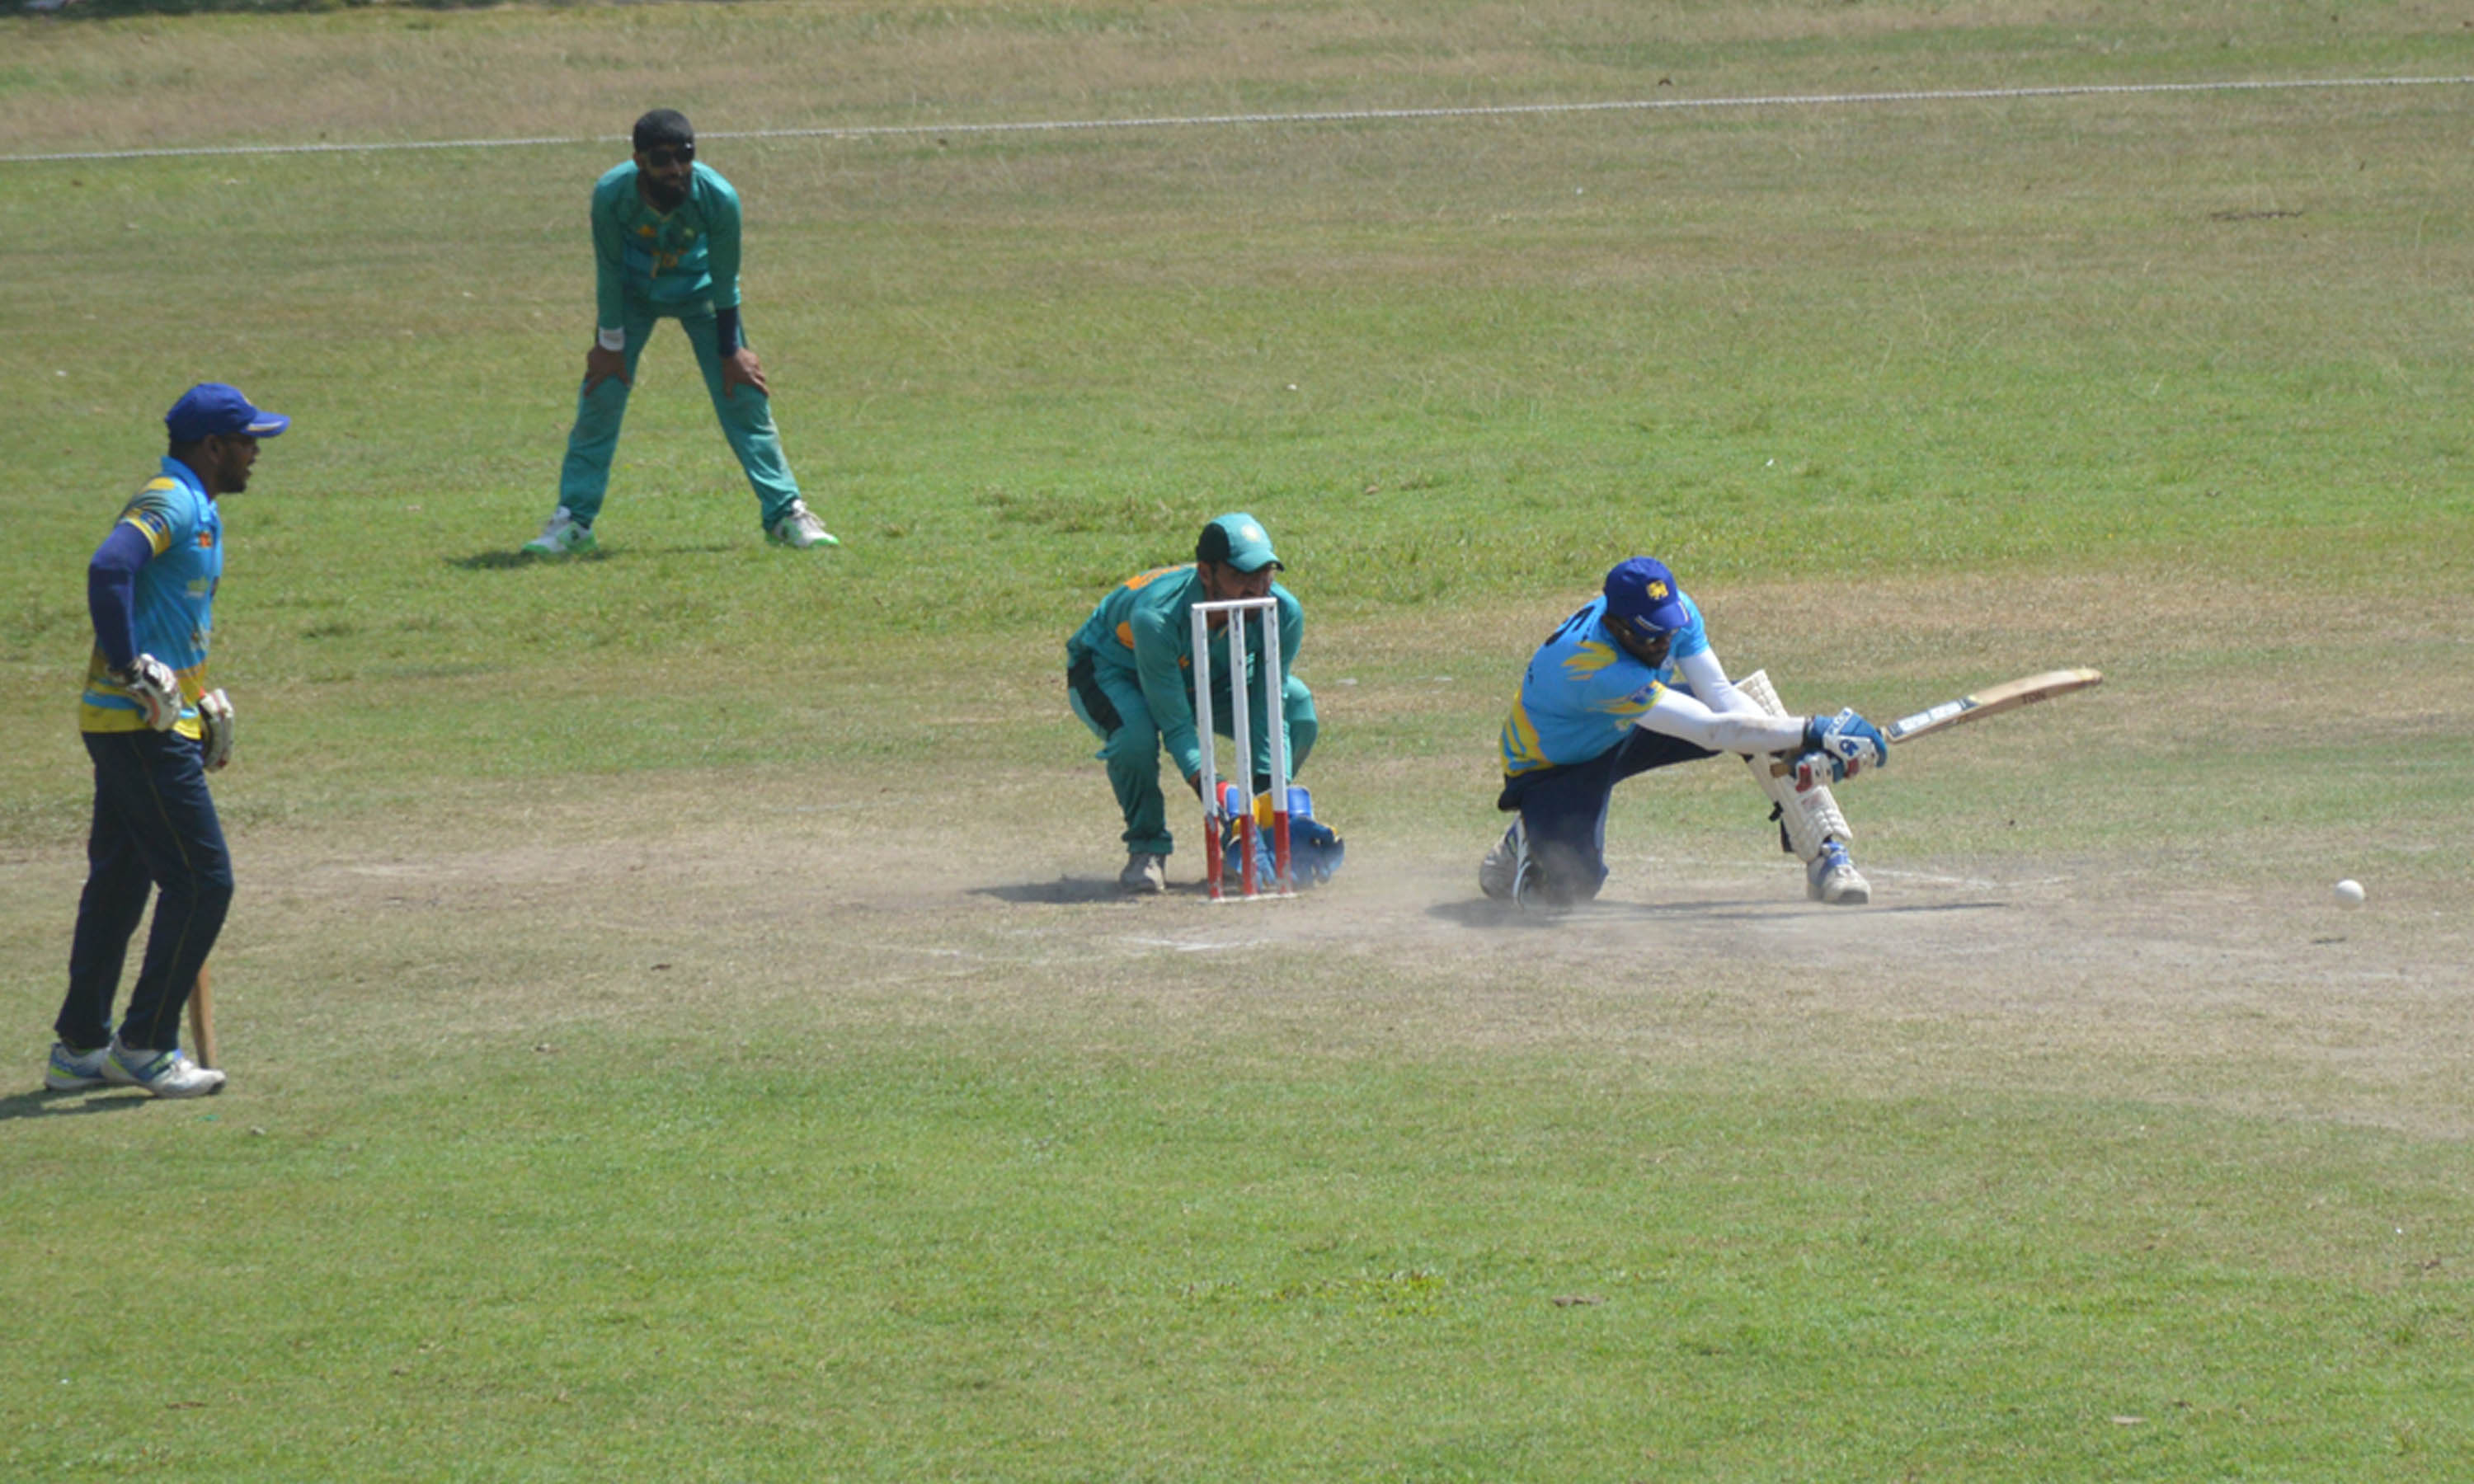 Pakistan outplayed the Sri Lankan in 2nd T-20 International Match of the series by 83 runs and locked the unreachable lead of 2-0 in 3 T-20 match series.